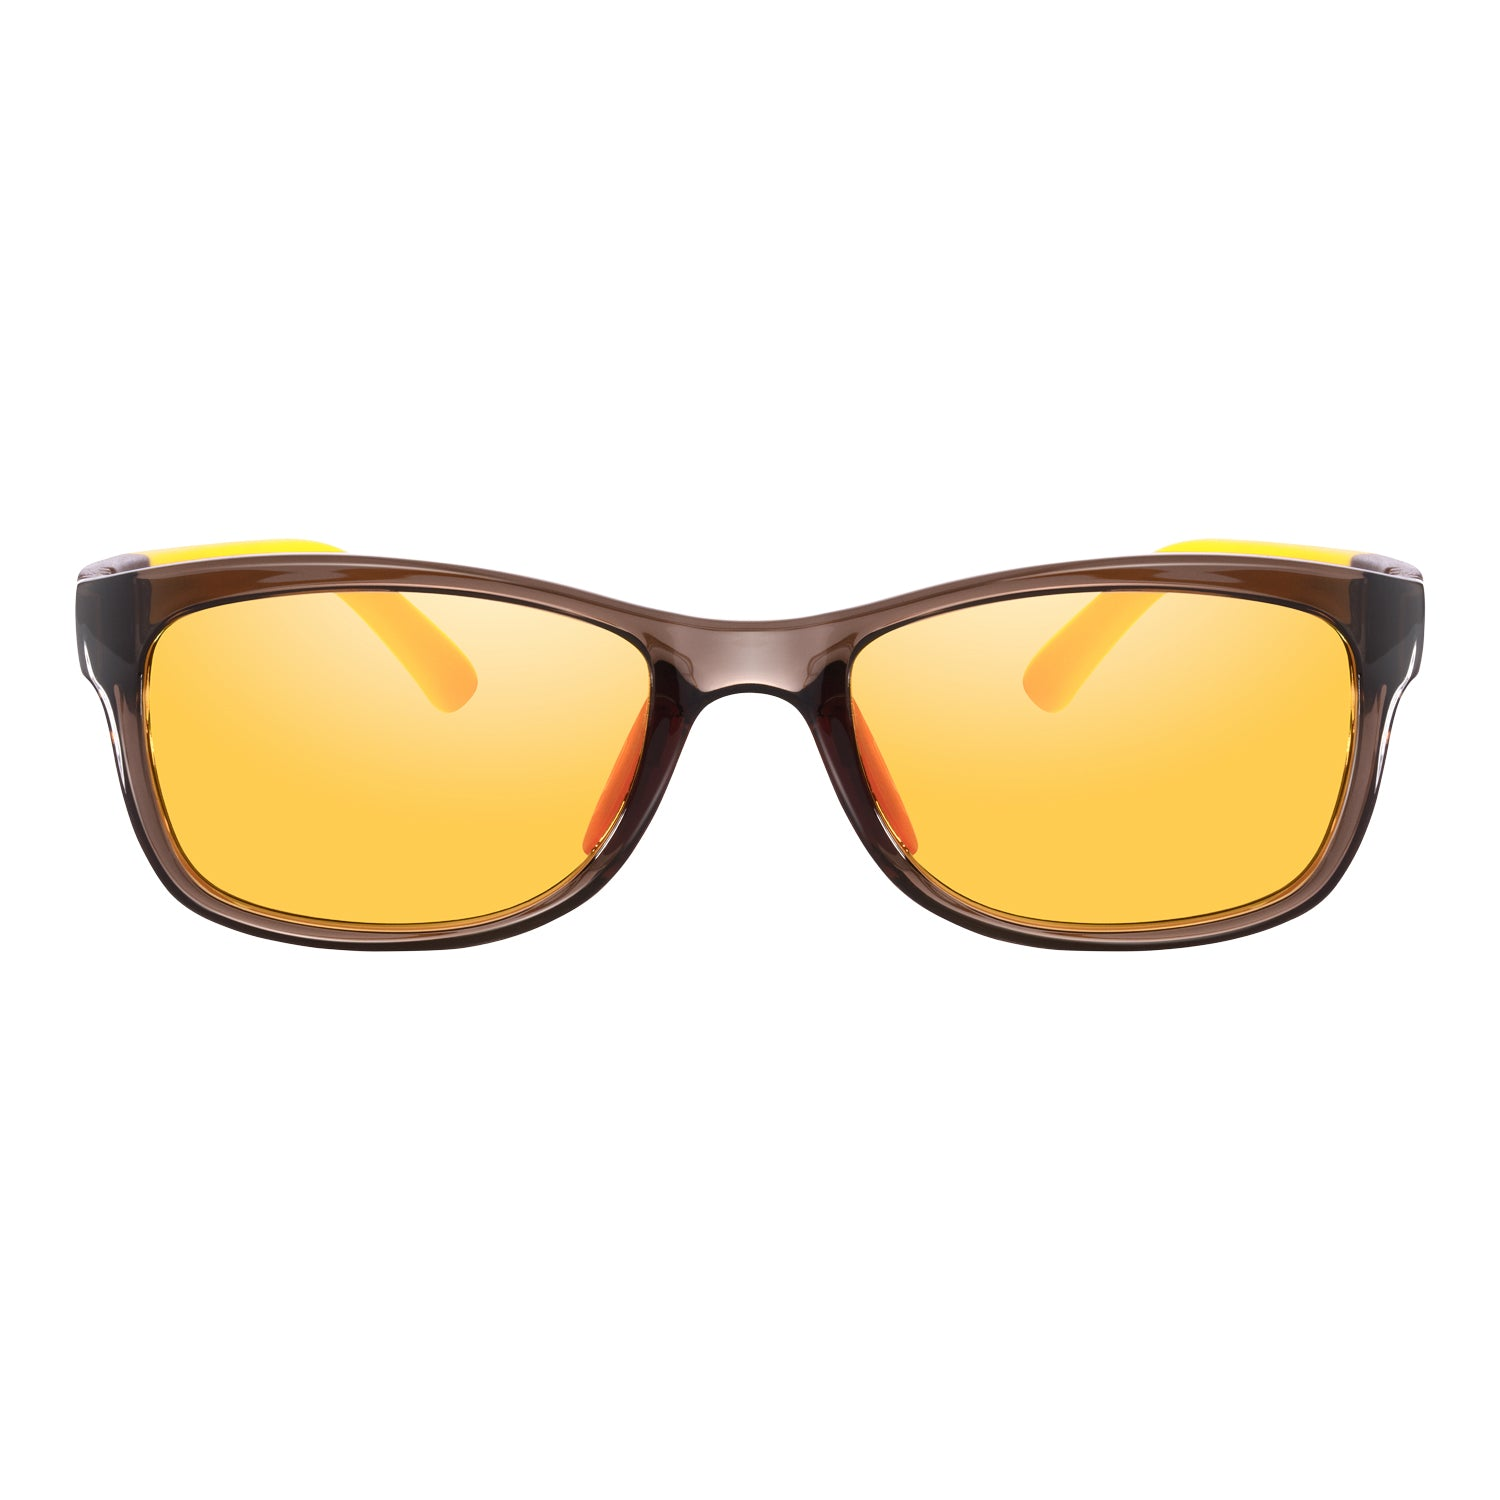 PRiSMA KiDS Blue Light Blocking Glasses for Children & Small Adults - Strong and flexible nylon frame  - brown & yellow